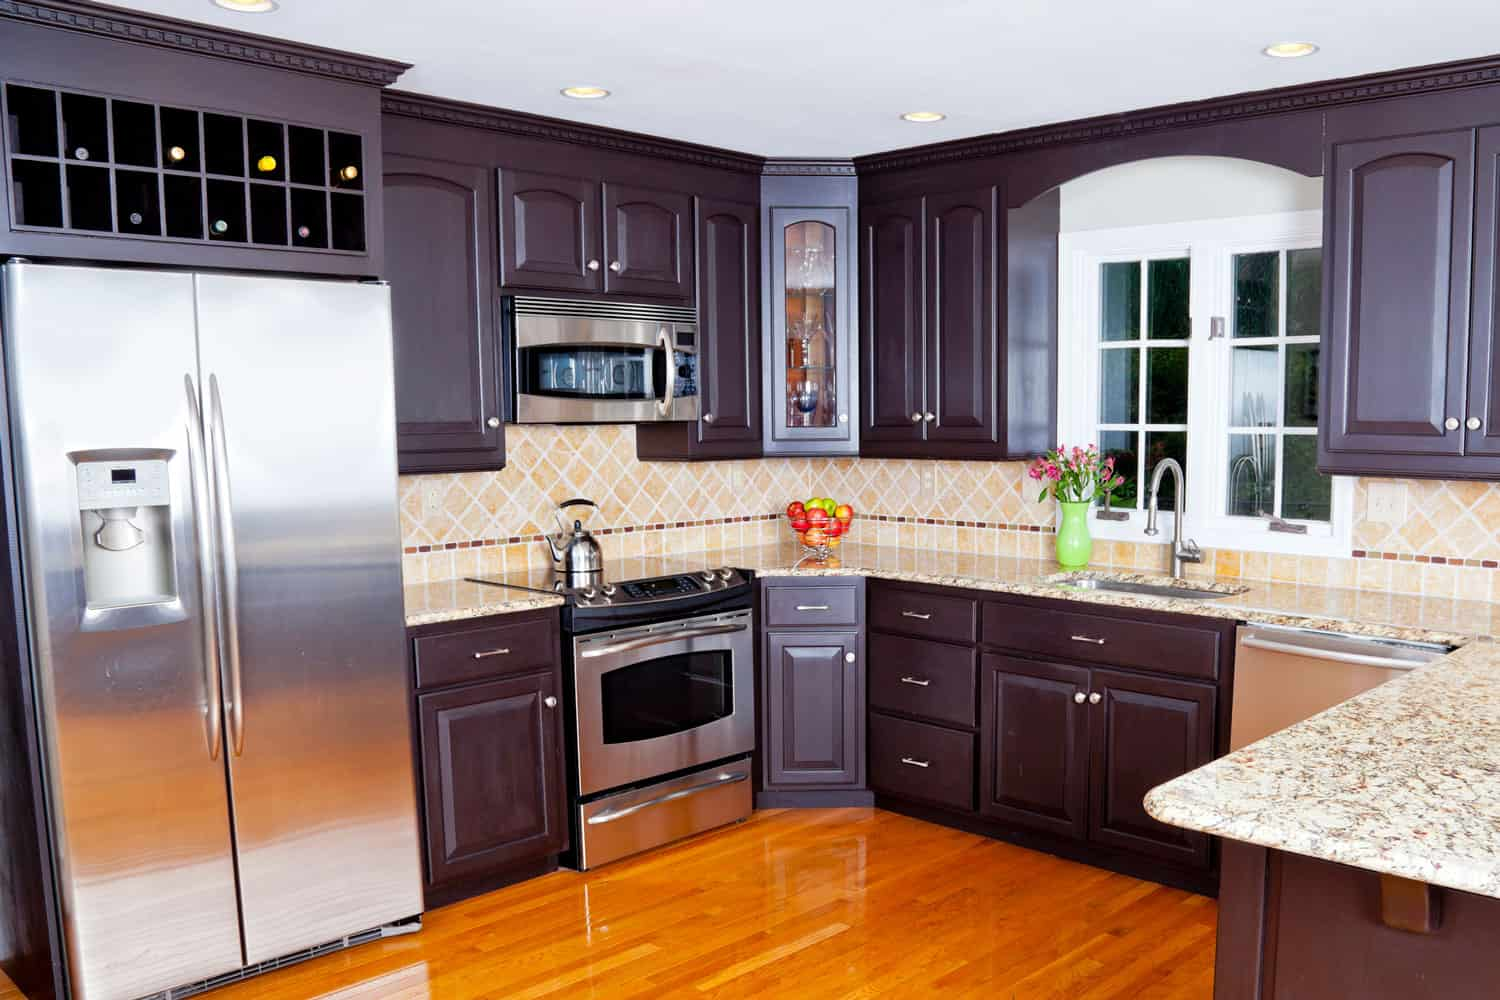 Kitchen with modern furniture and cabinets